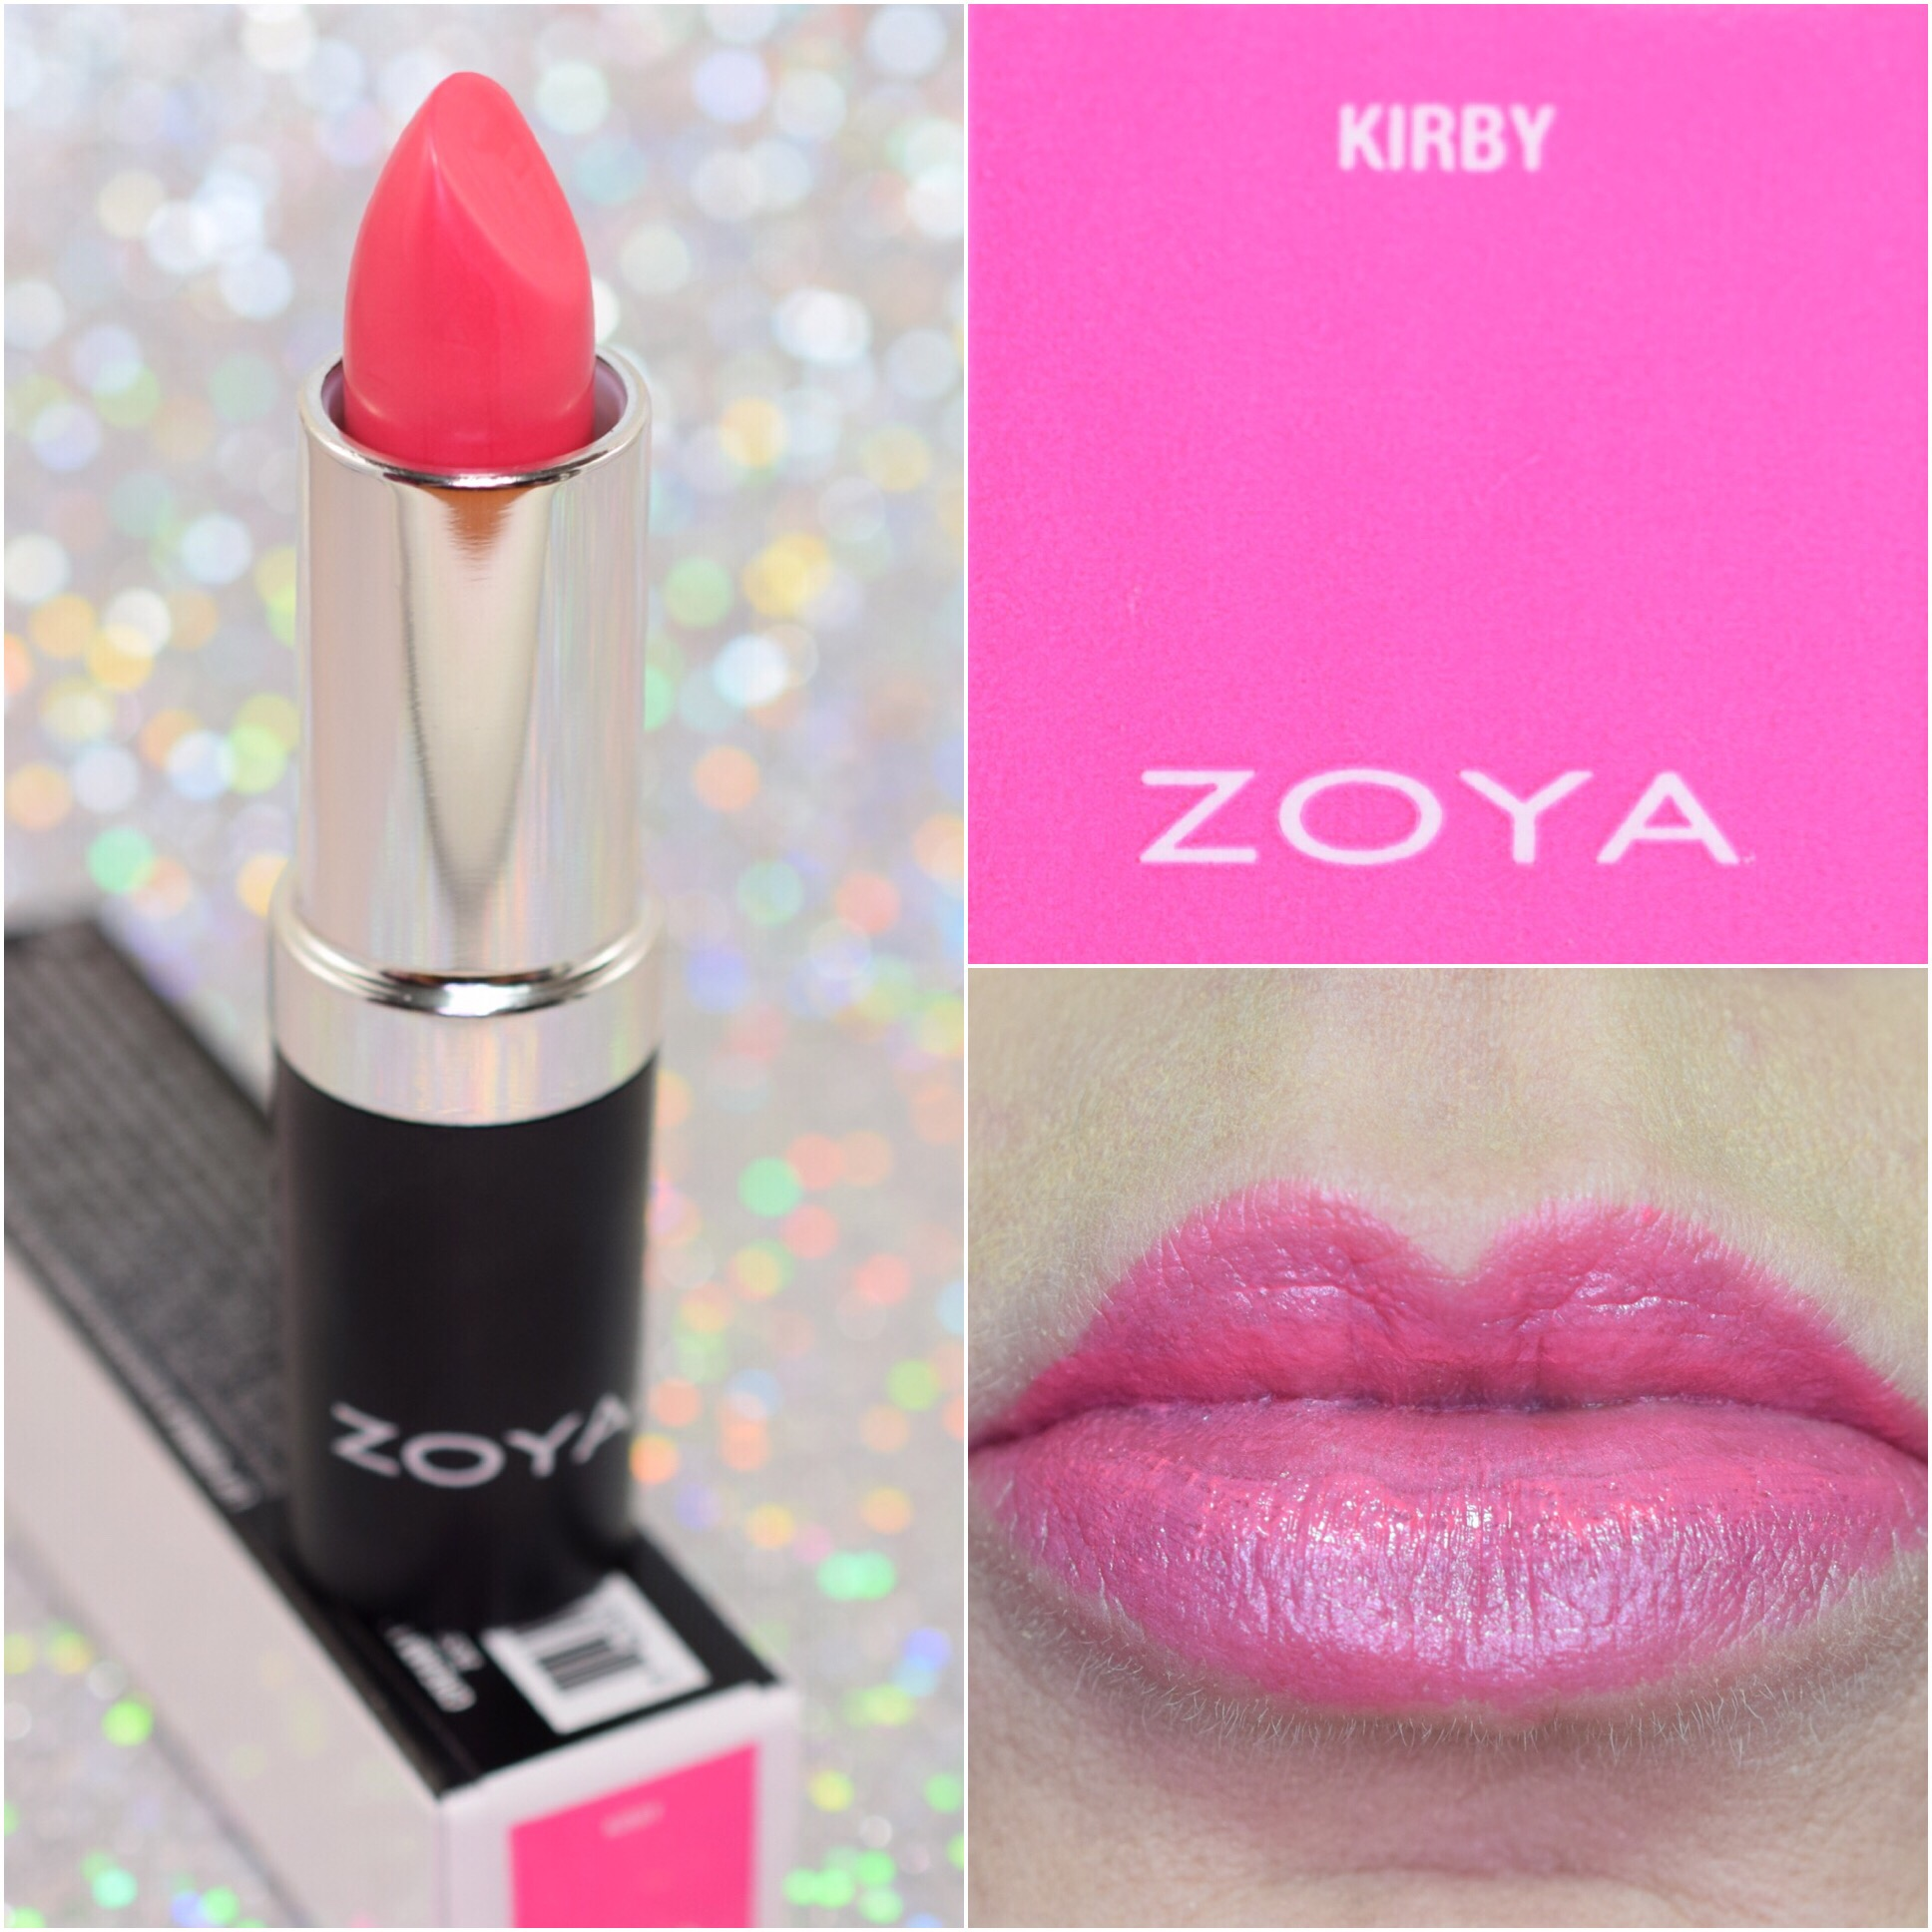 Zoya Lipstick Lippies Kirby